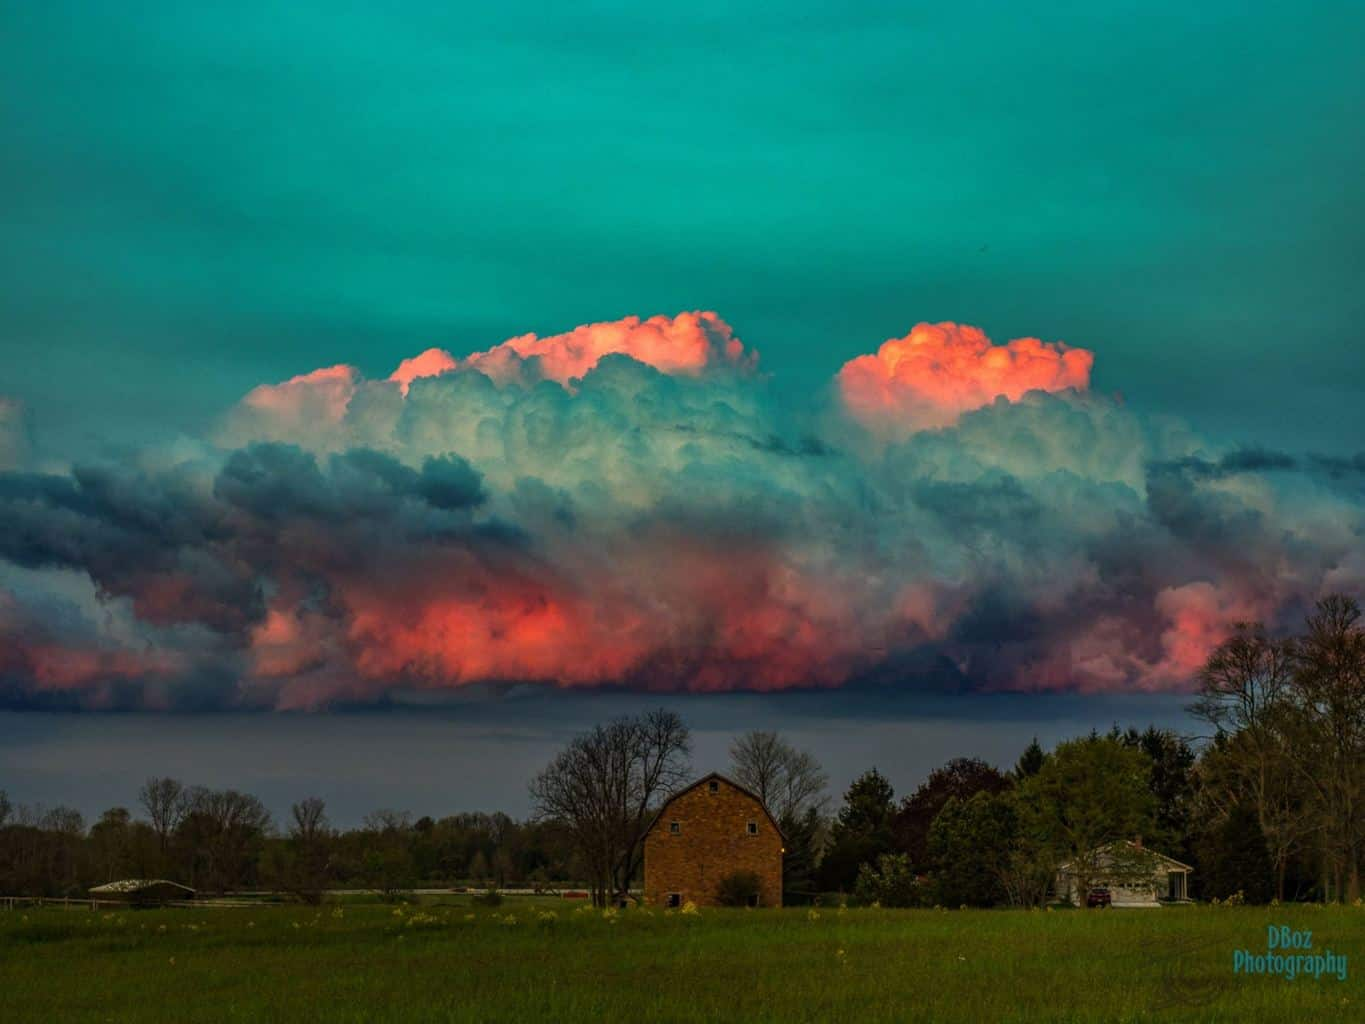 One big fluffy cloud is illuminated by the setting sun on May 7, 2016 in Rives Junction, Michigan. It seemed to settle on this barn for the evening.